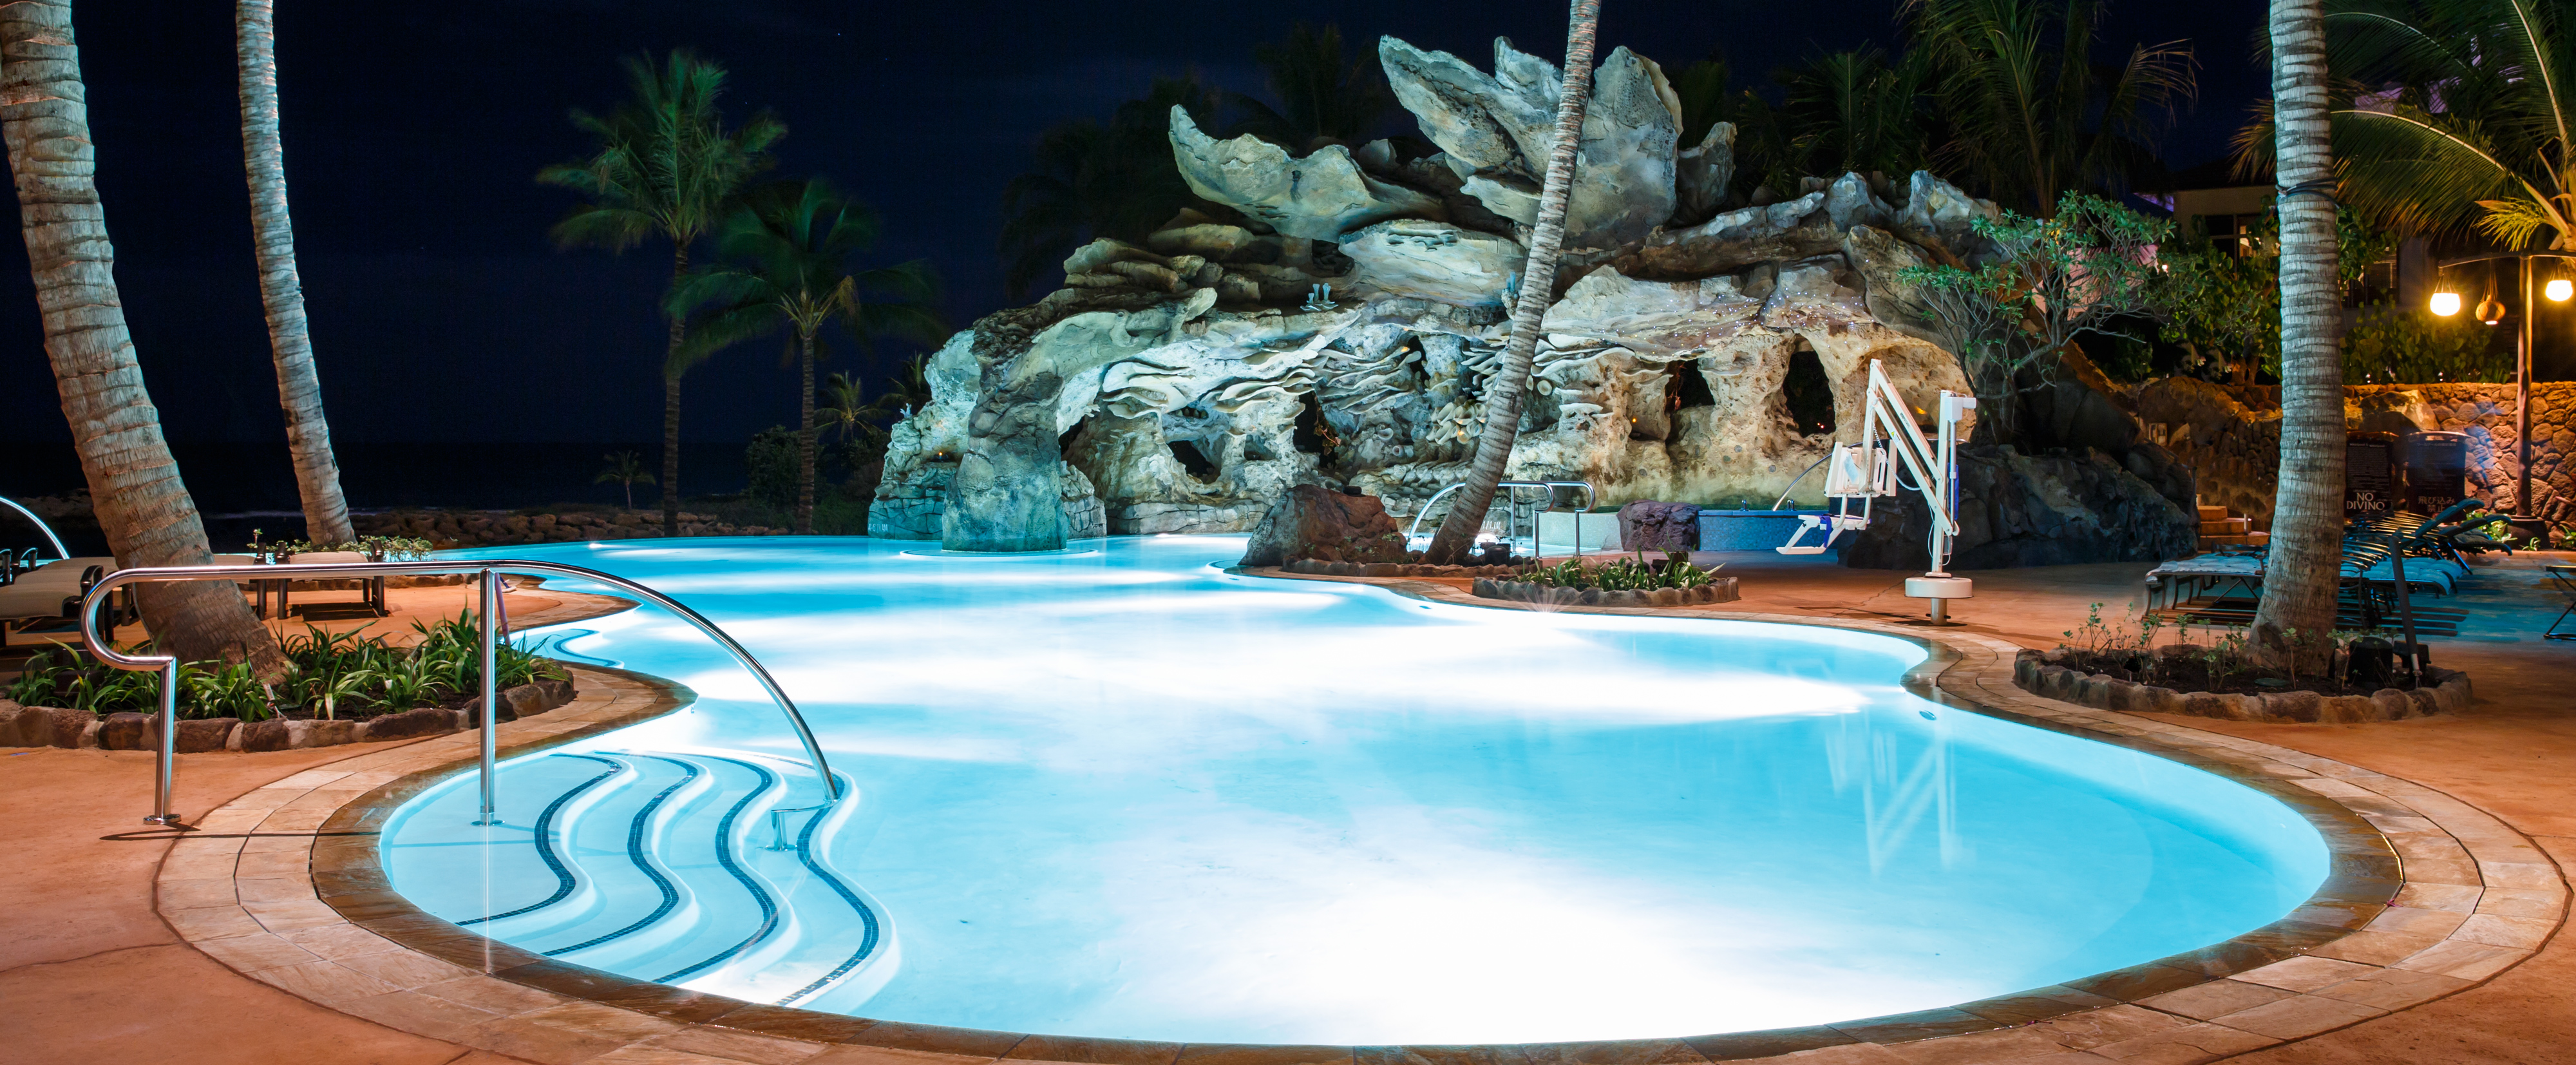 glittering lights illuminate the ka maka grotto oceanfront pool during an after dark experience - Swimming Pools With Grottos